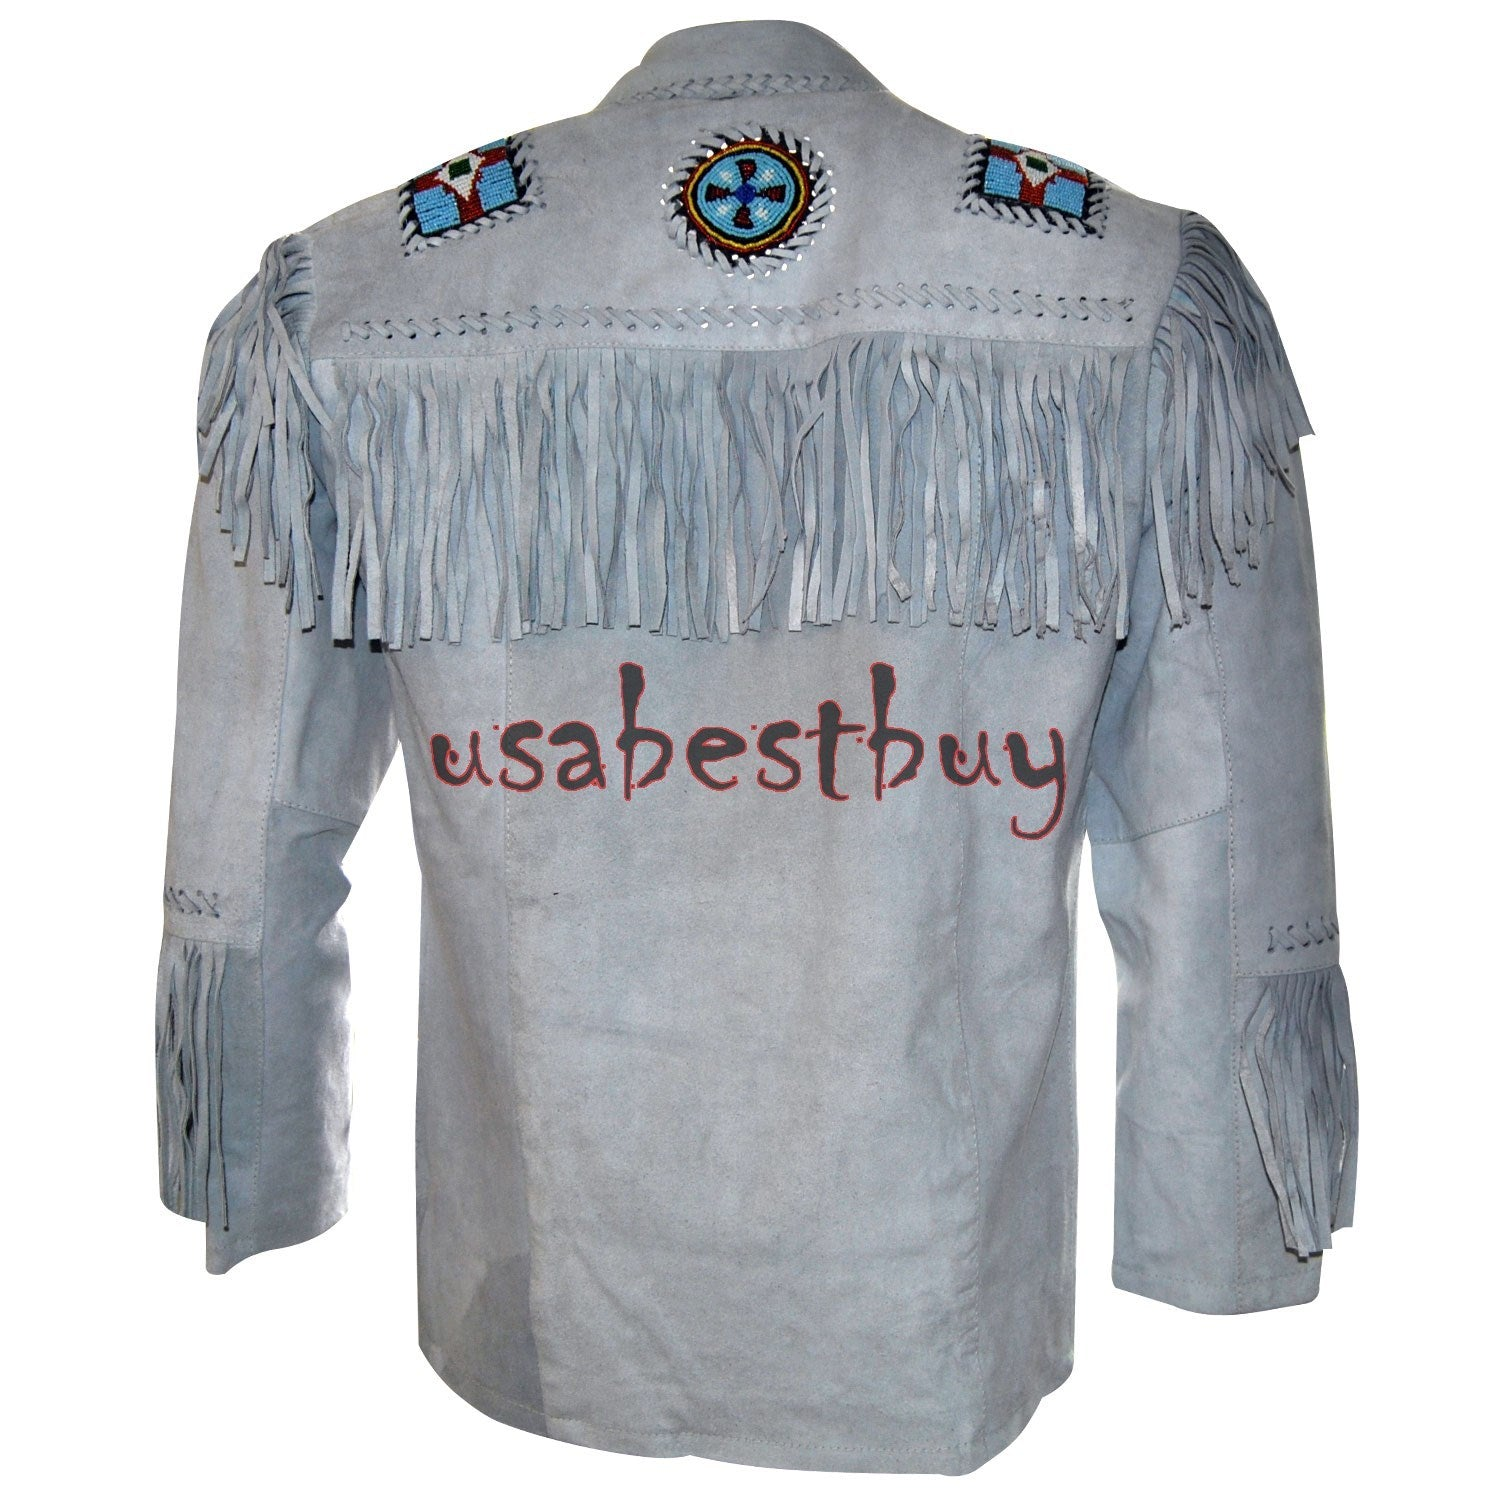 Handmade New Men White Leather Western Cowboy Jacket With Fringe, Bone and Beads